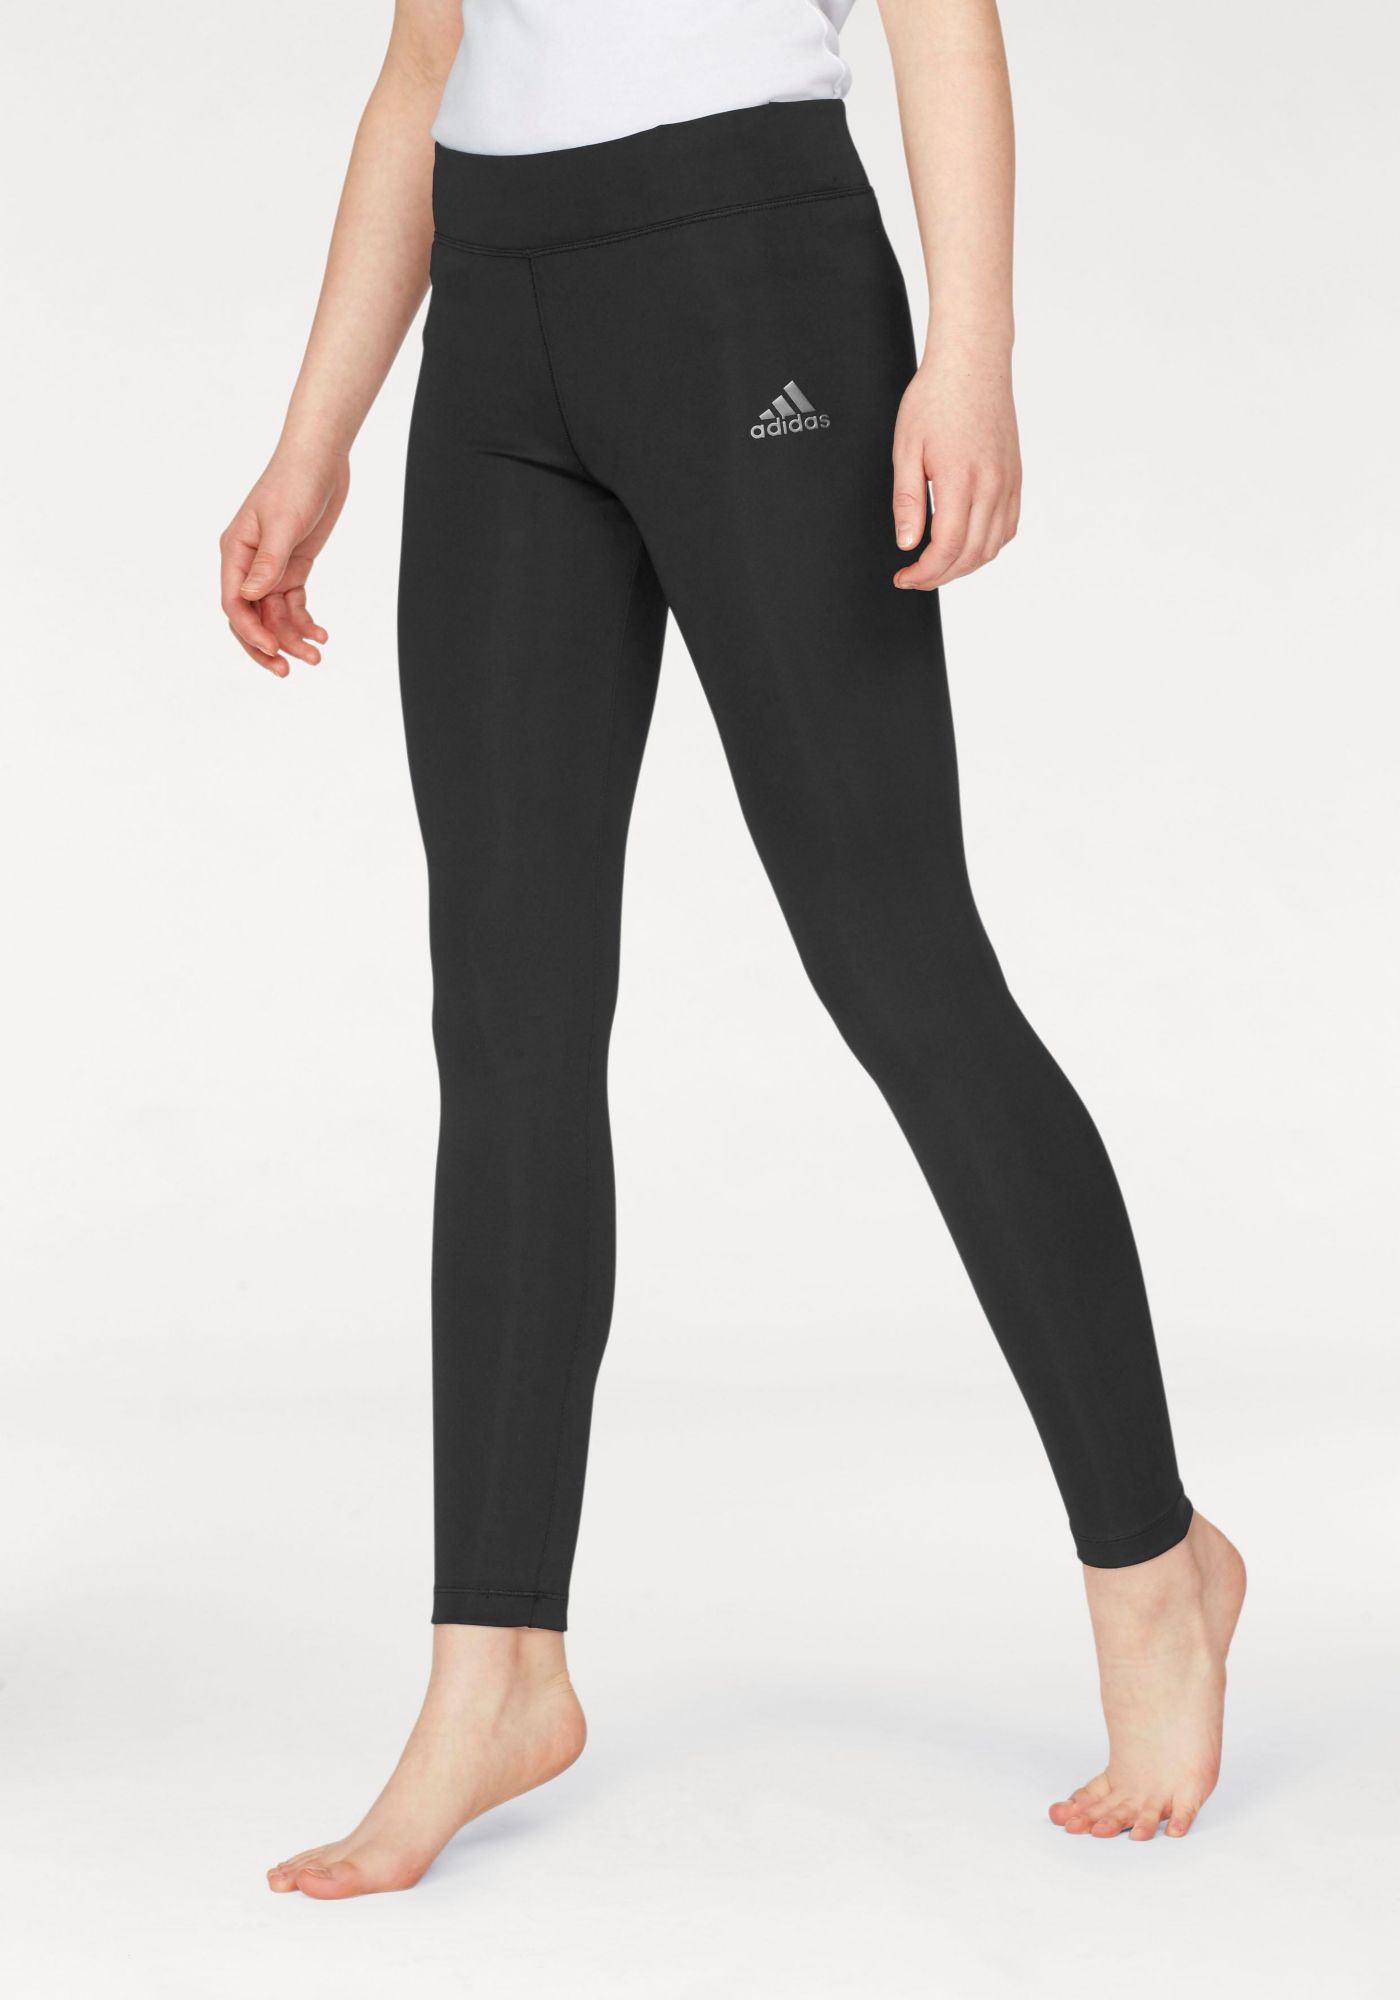 ADIDAS PERFORMANCE adidas Performance Funktionstights »YOUNG GIRL TR TIGHT«